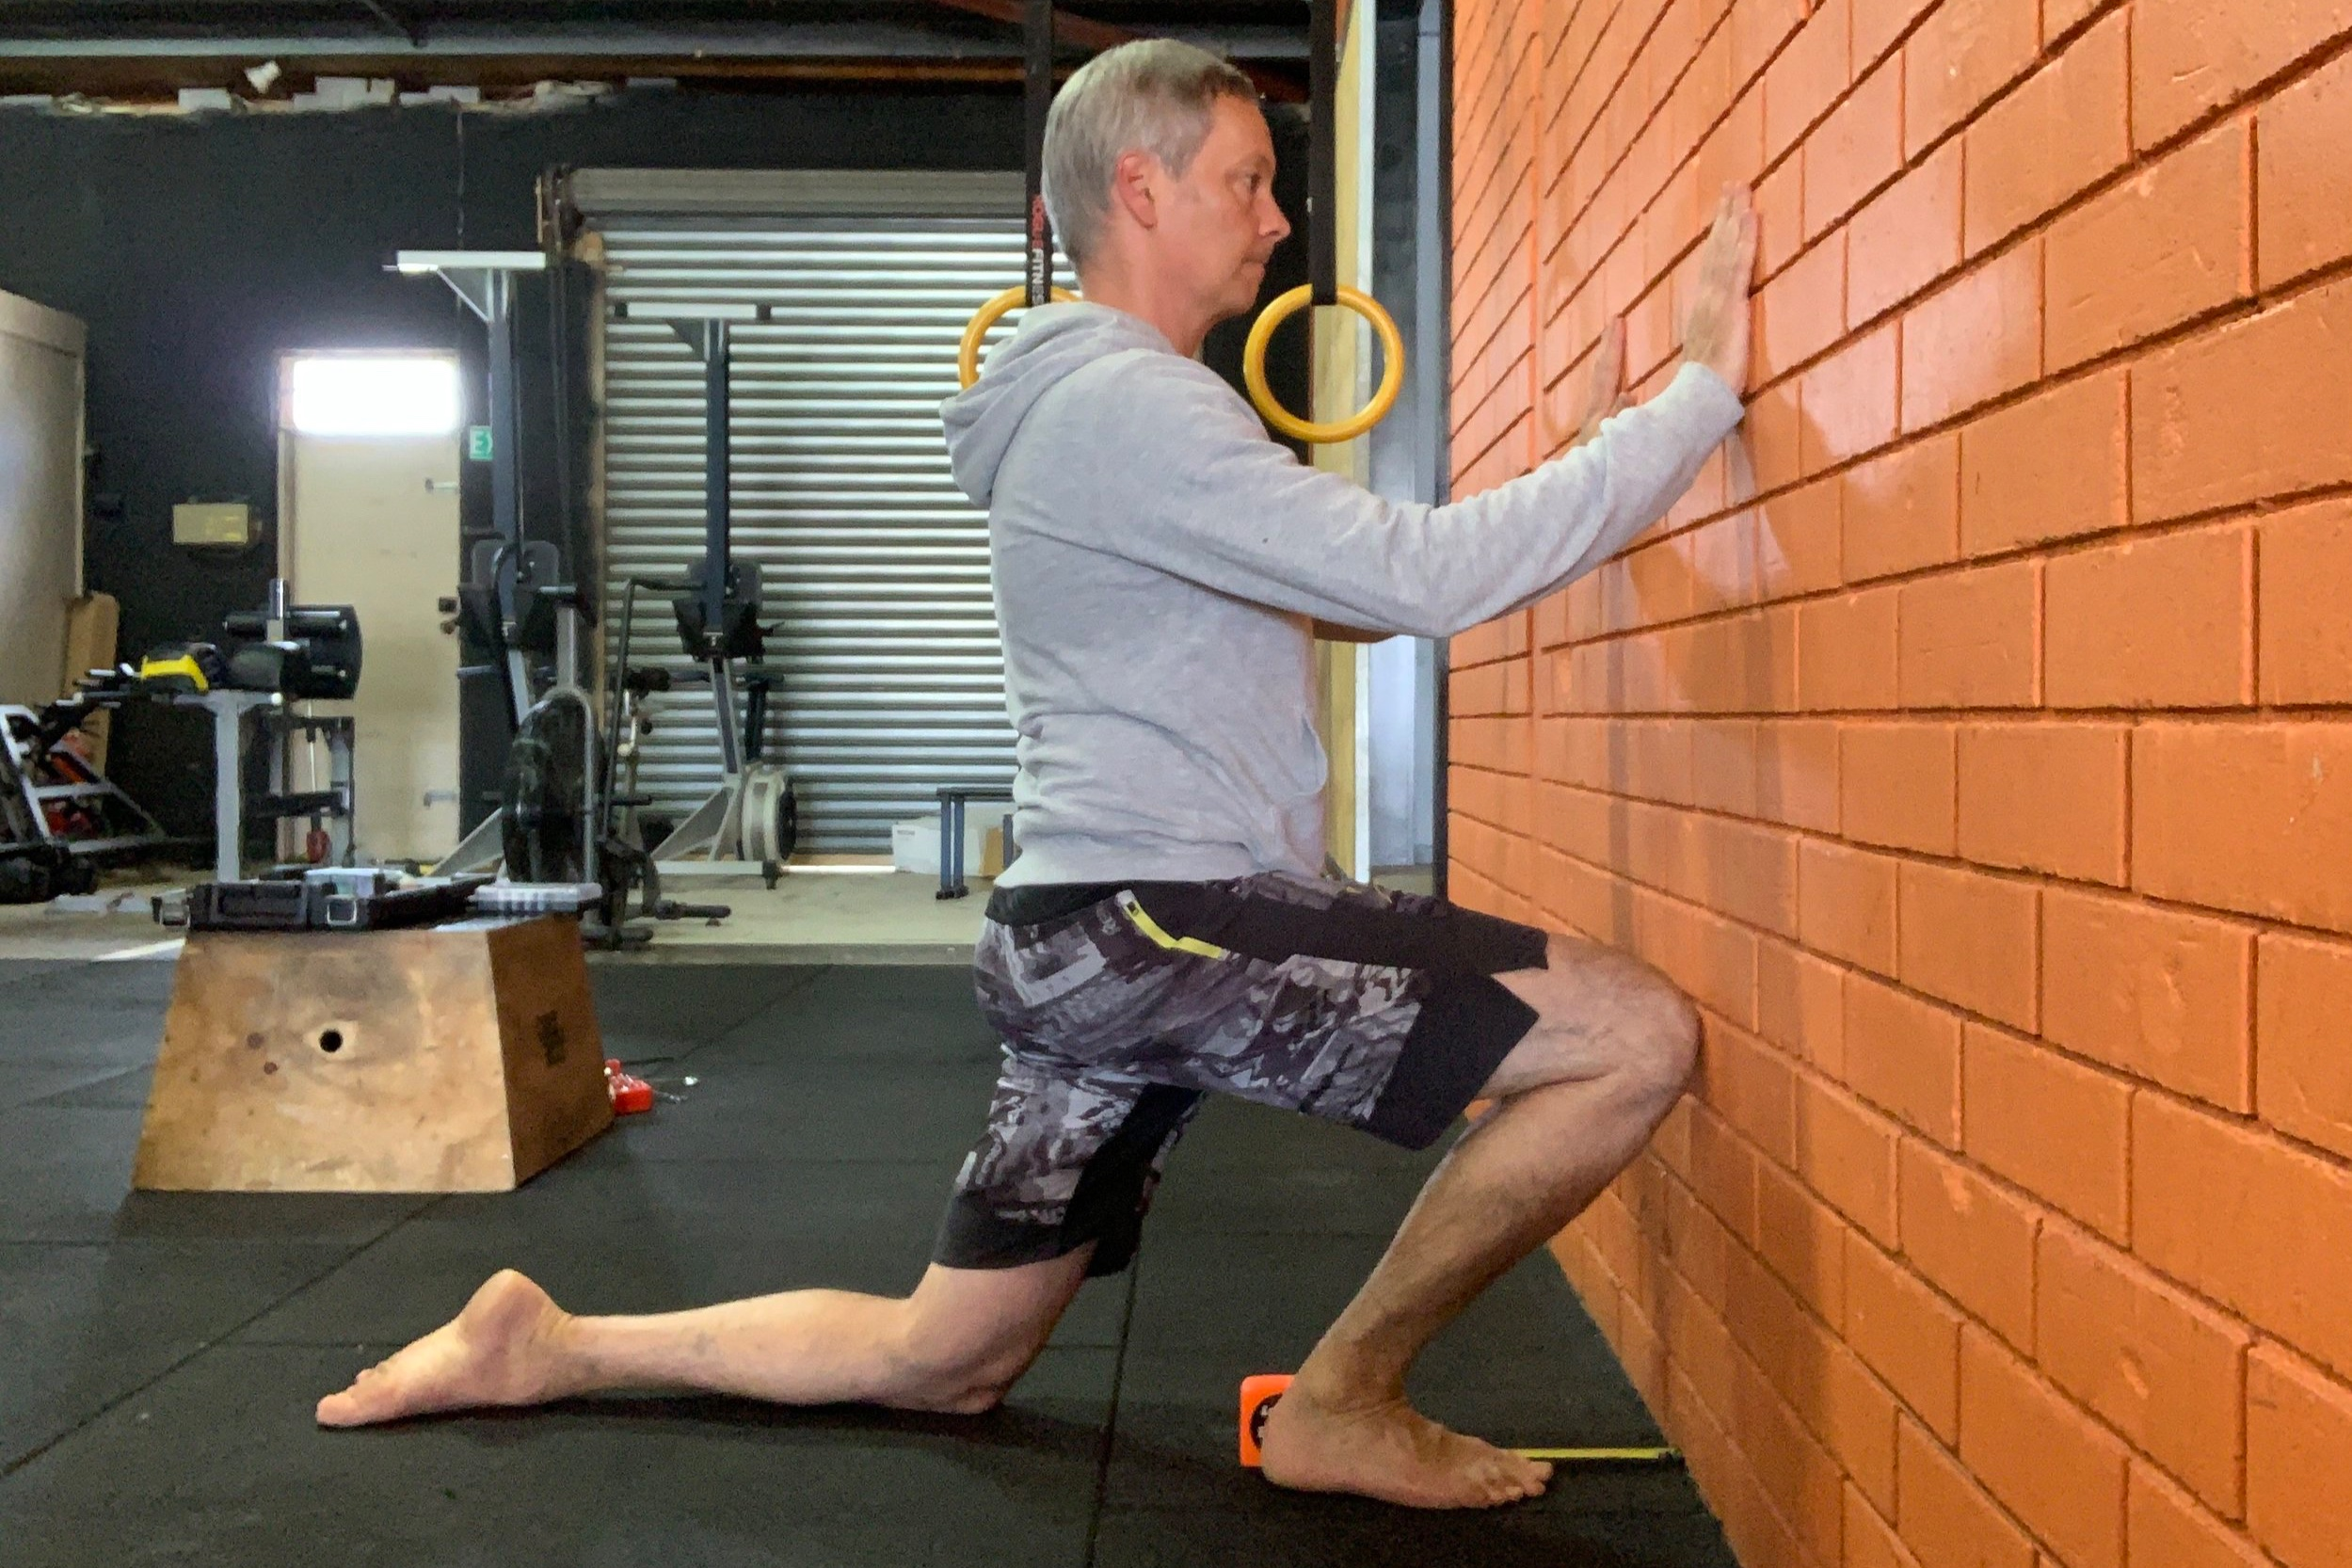 PASS: You can touch your knee to the wall without lifting your heel or letting your knee fall in